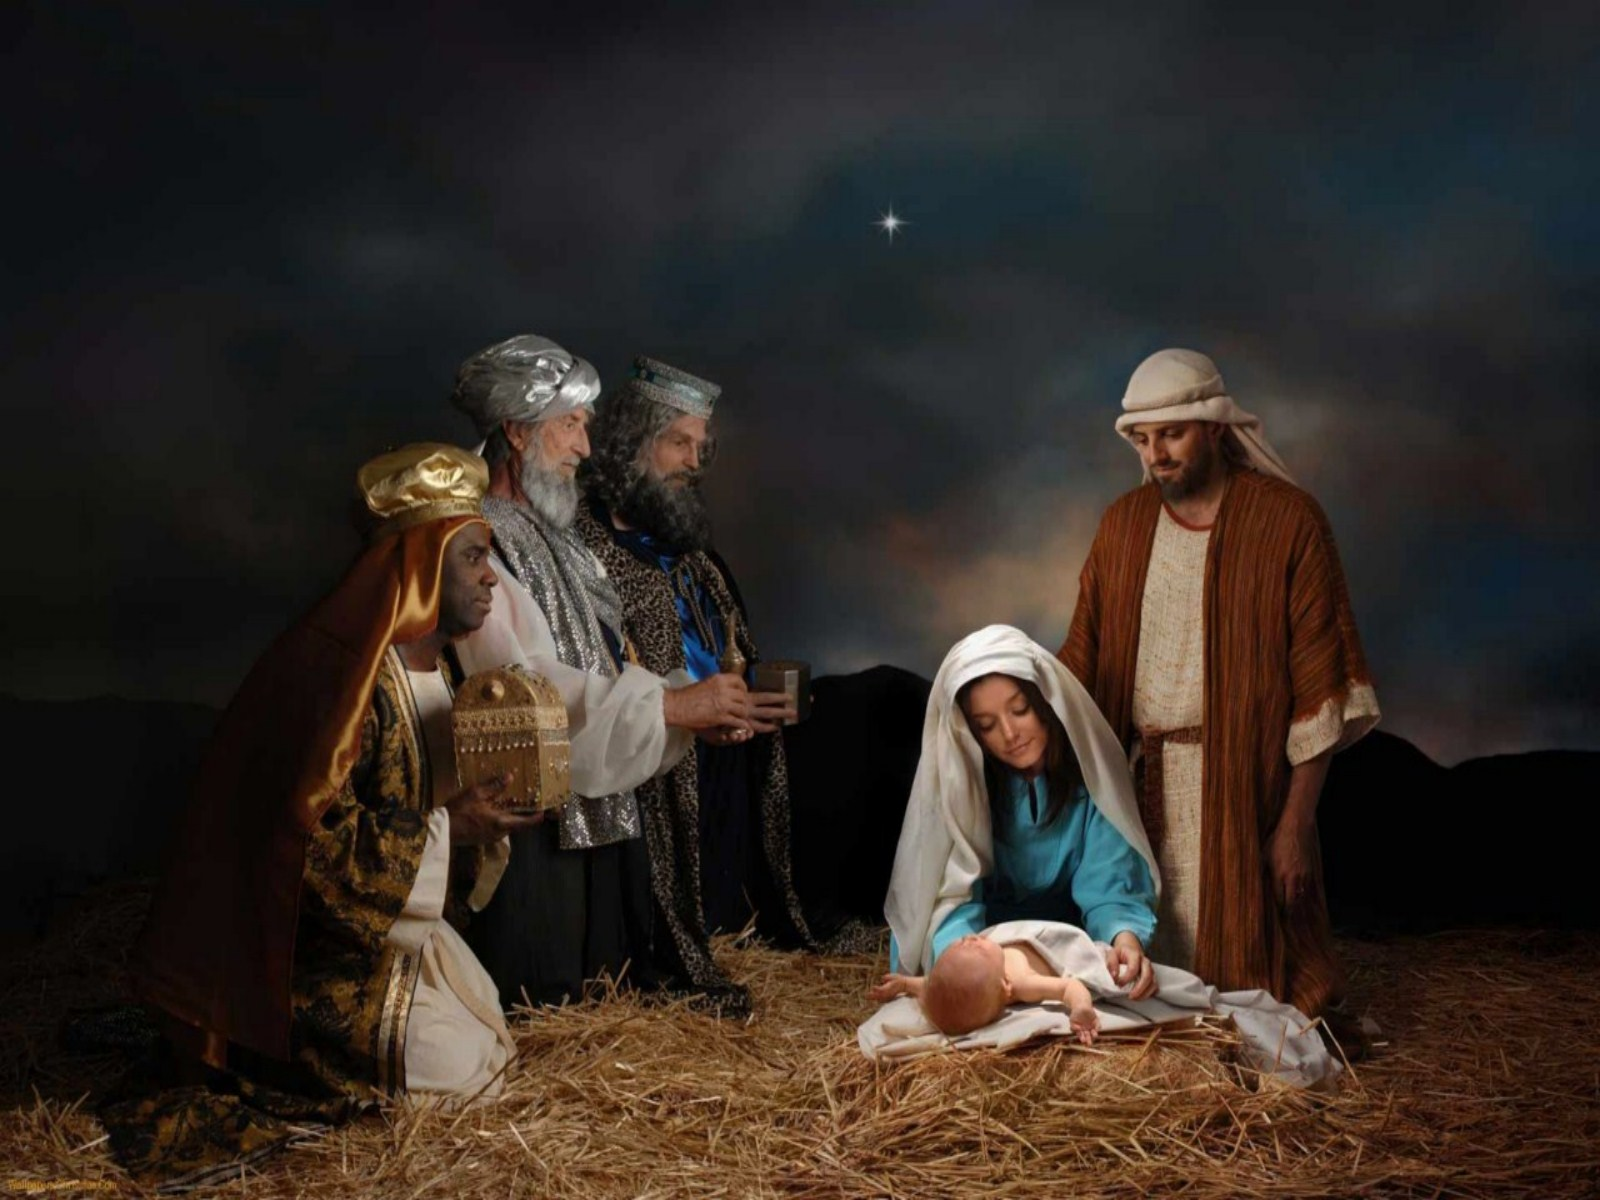 christmas nativity backgrounds wallpaper  jpeg otherjpg 1600x1200